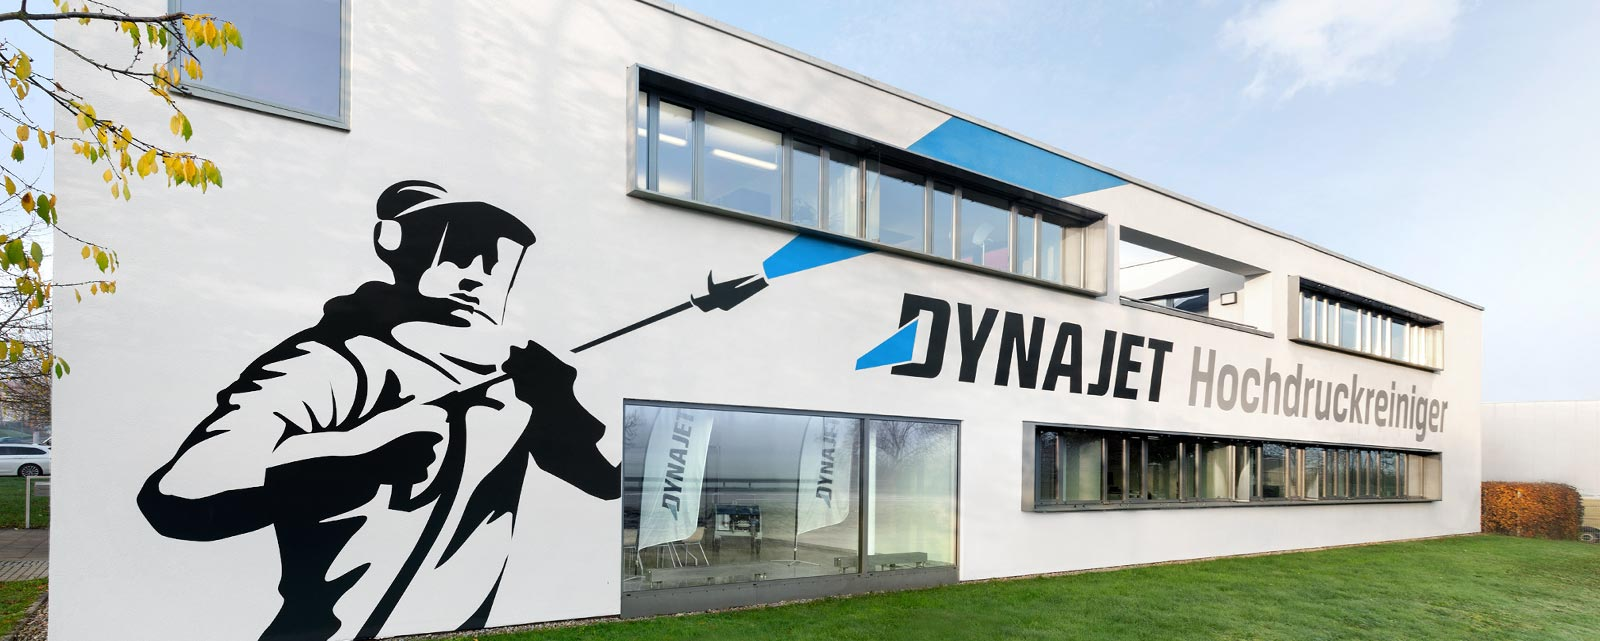 DYNAJET is an innovative company specialising in professional high-pressure water cleaners and accessories for almost every professional situation